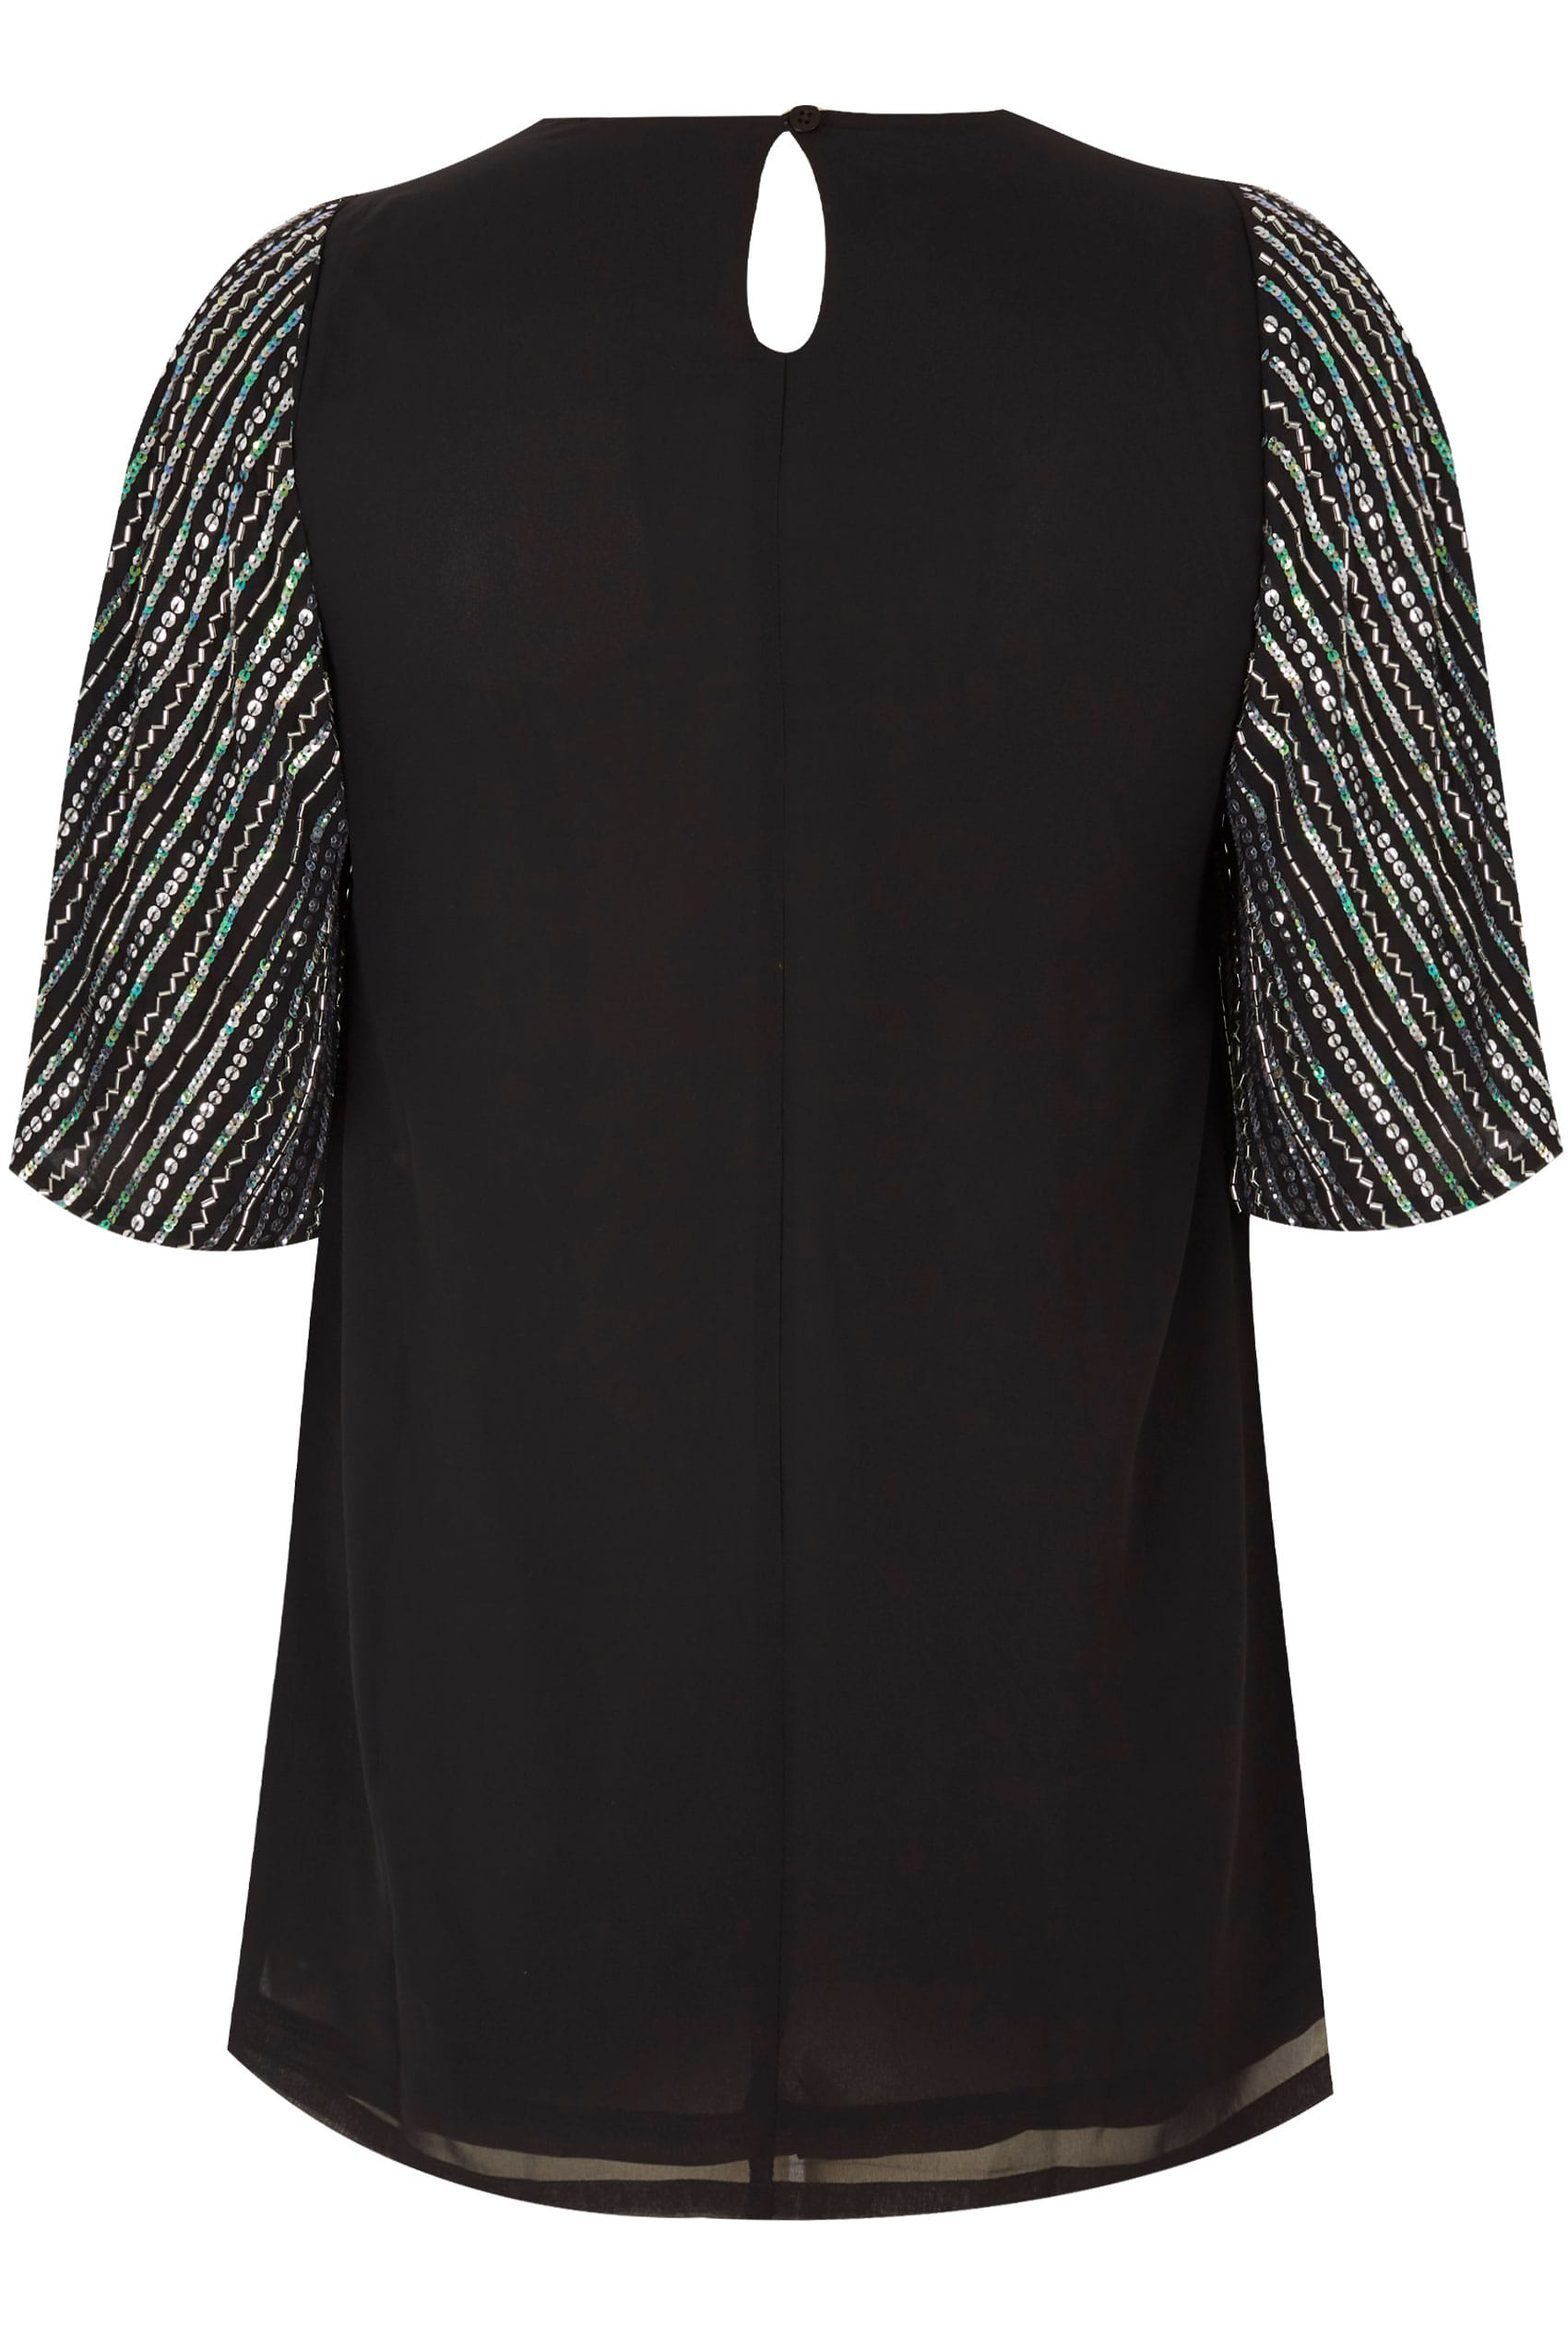 62430b41af LUXE Black Sequin Embellished Top With Kimono Sleeves